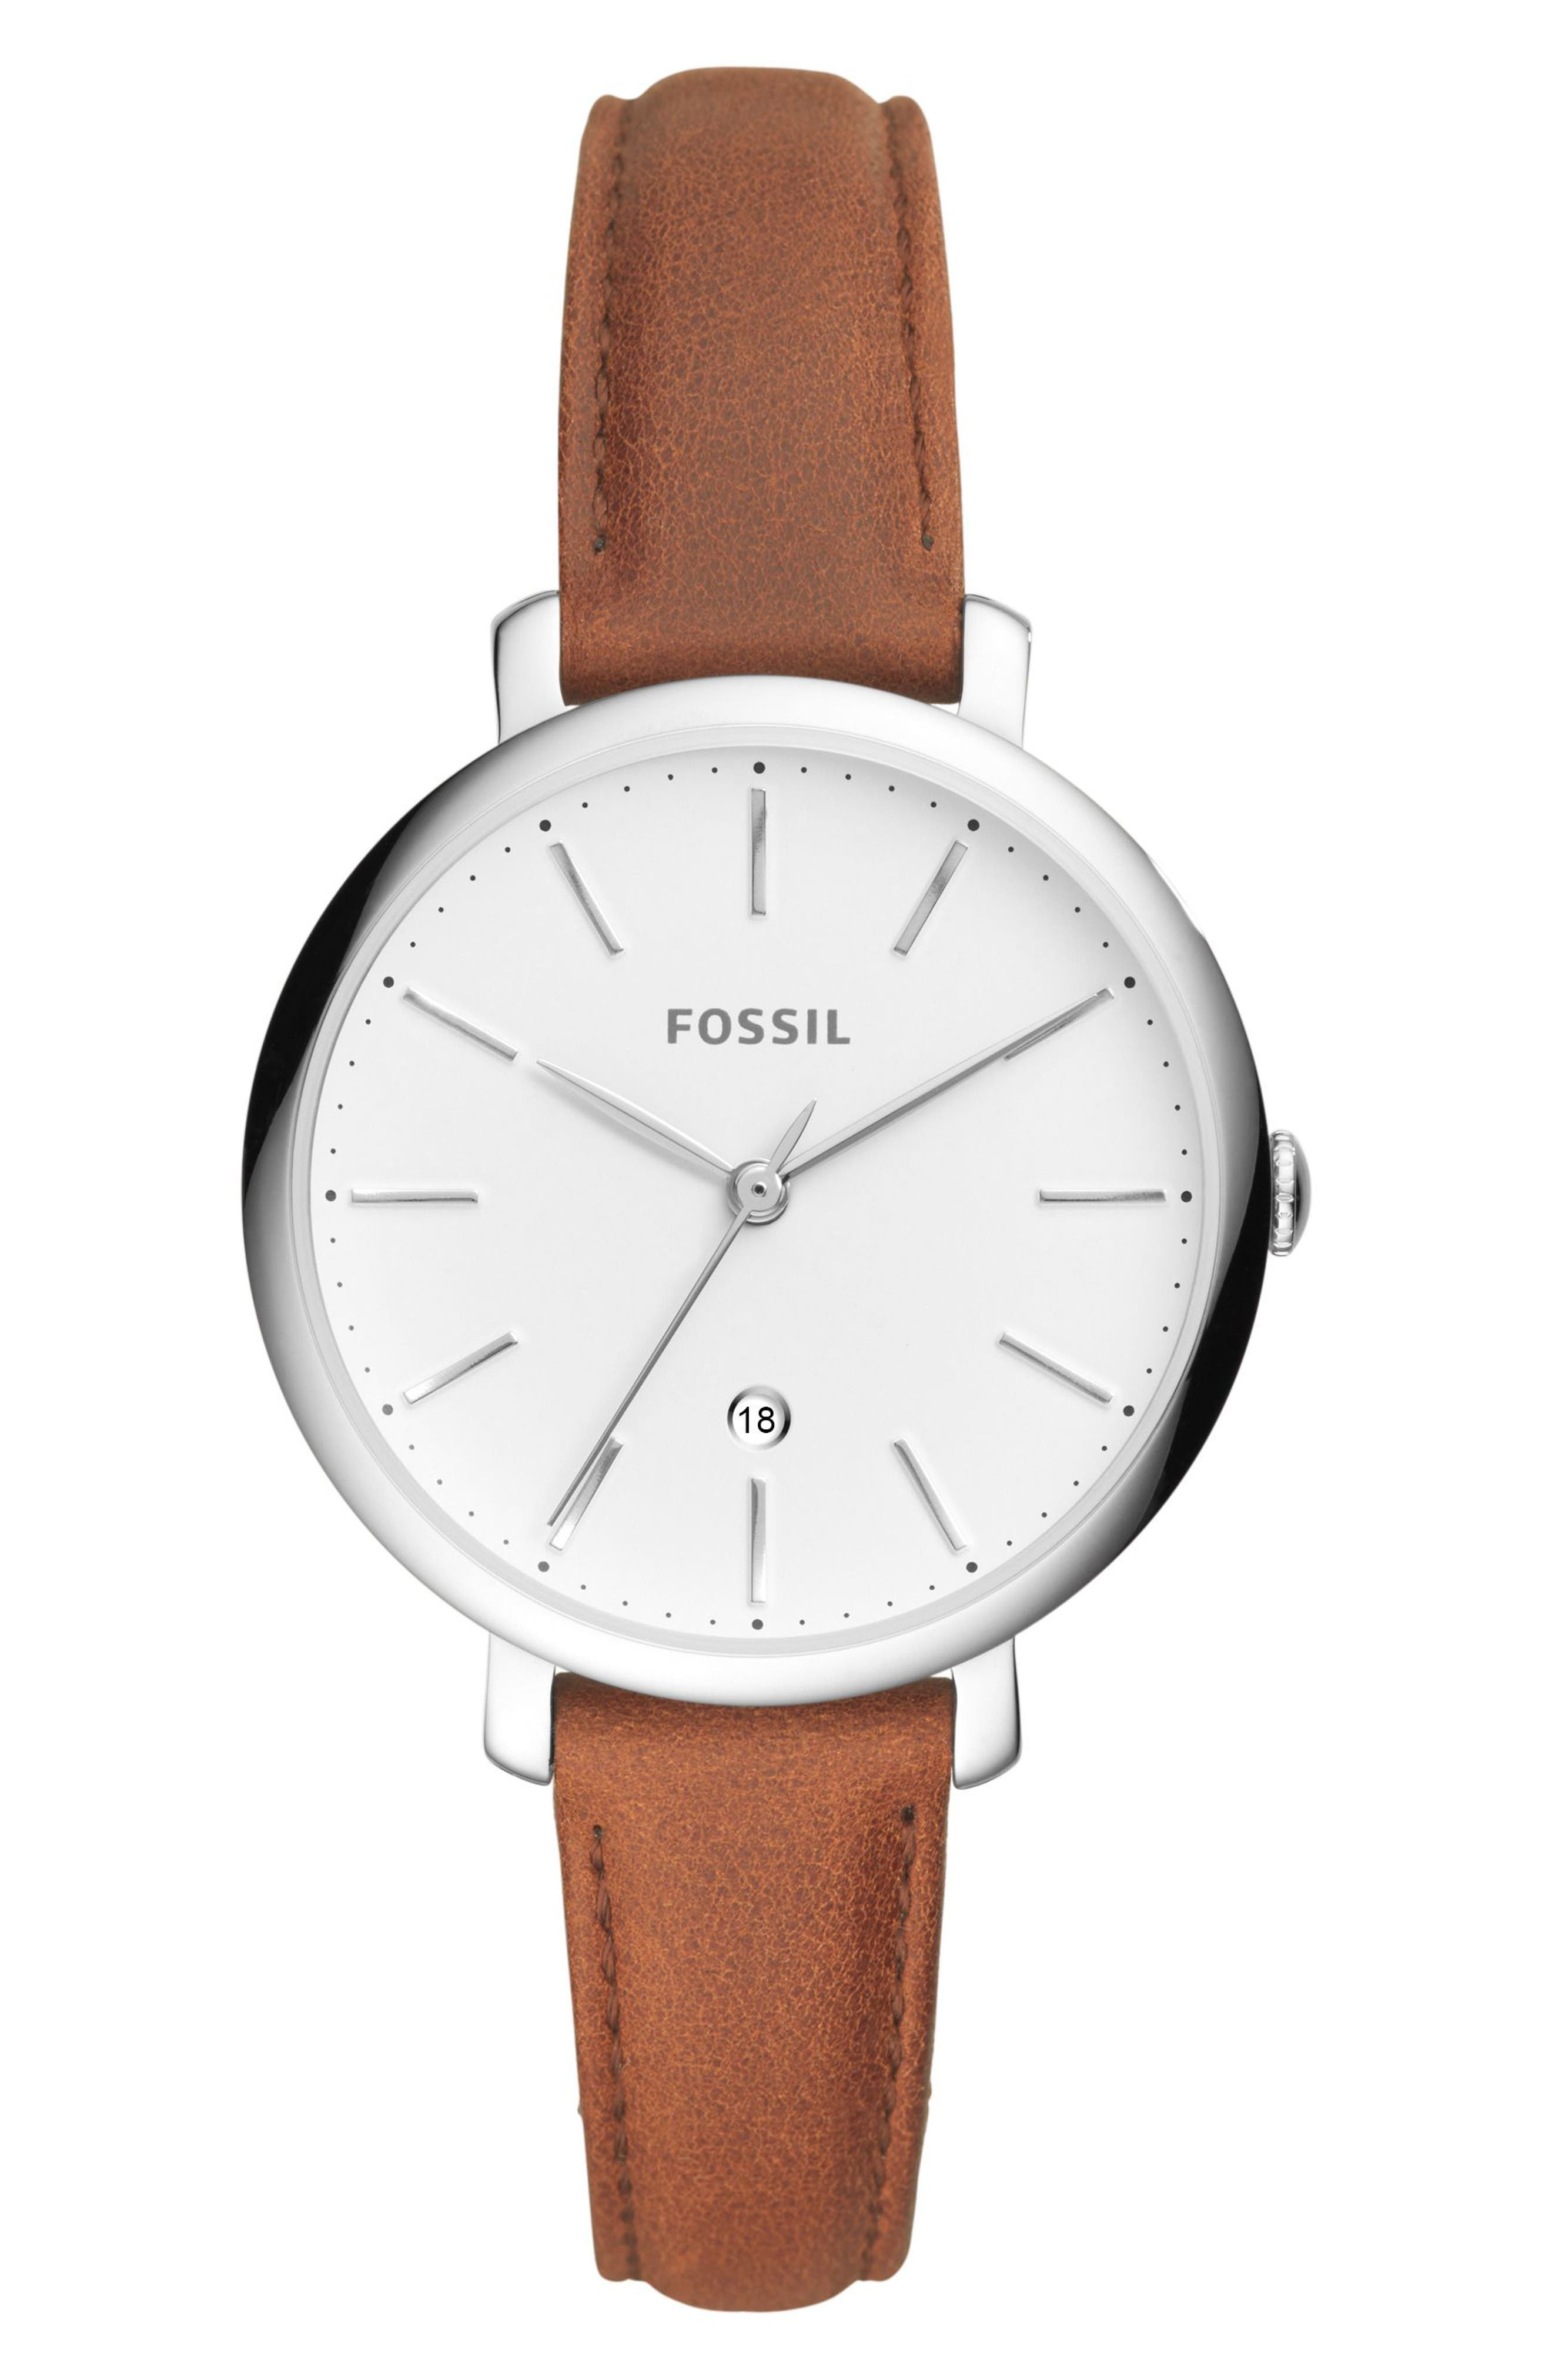 FOSSIL, Jacqueline Leather Strap Watch, 36mm, Main thumbnail 1, color, BROWN/ WHITE/ SILVER